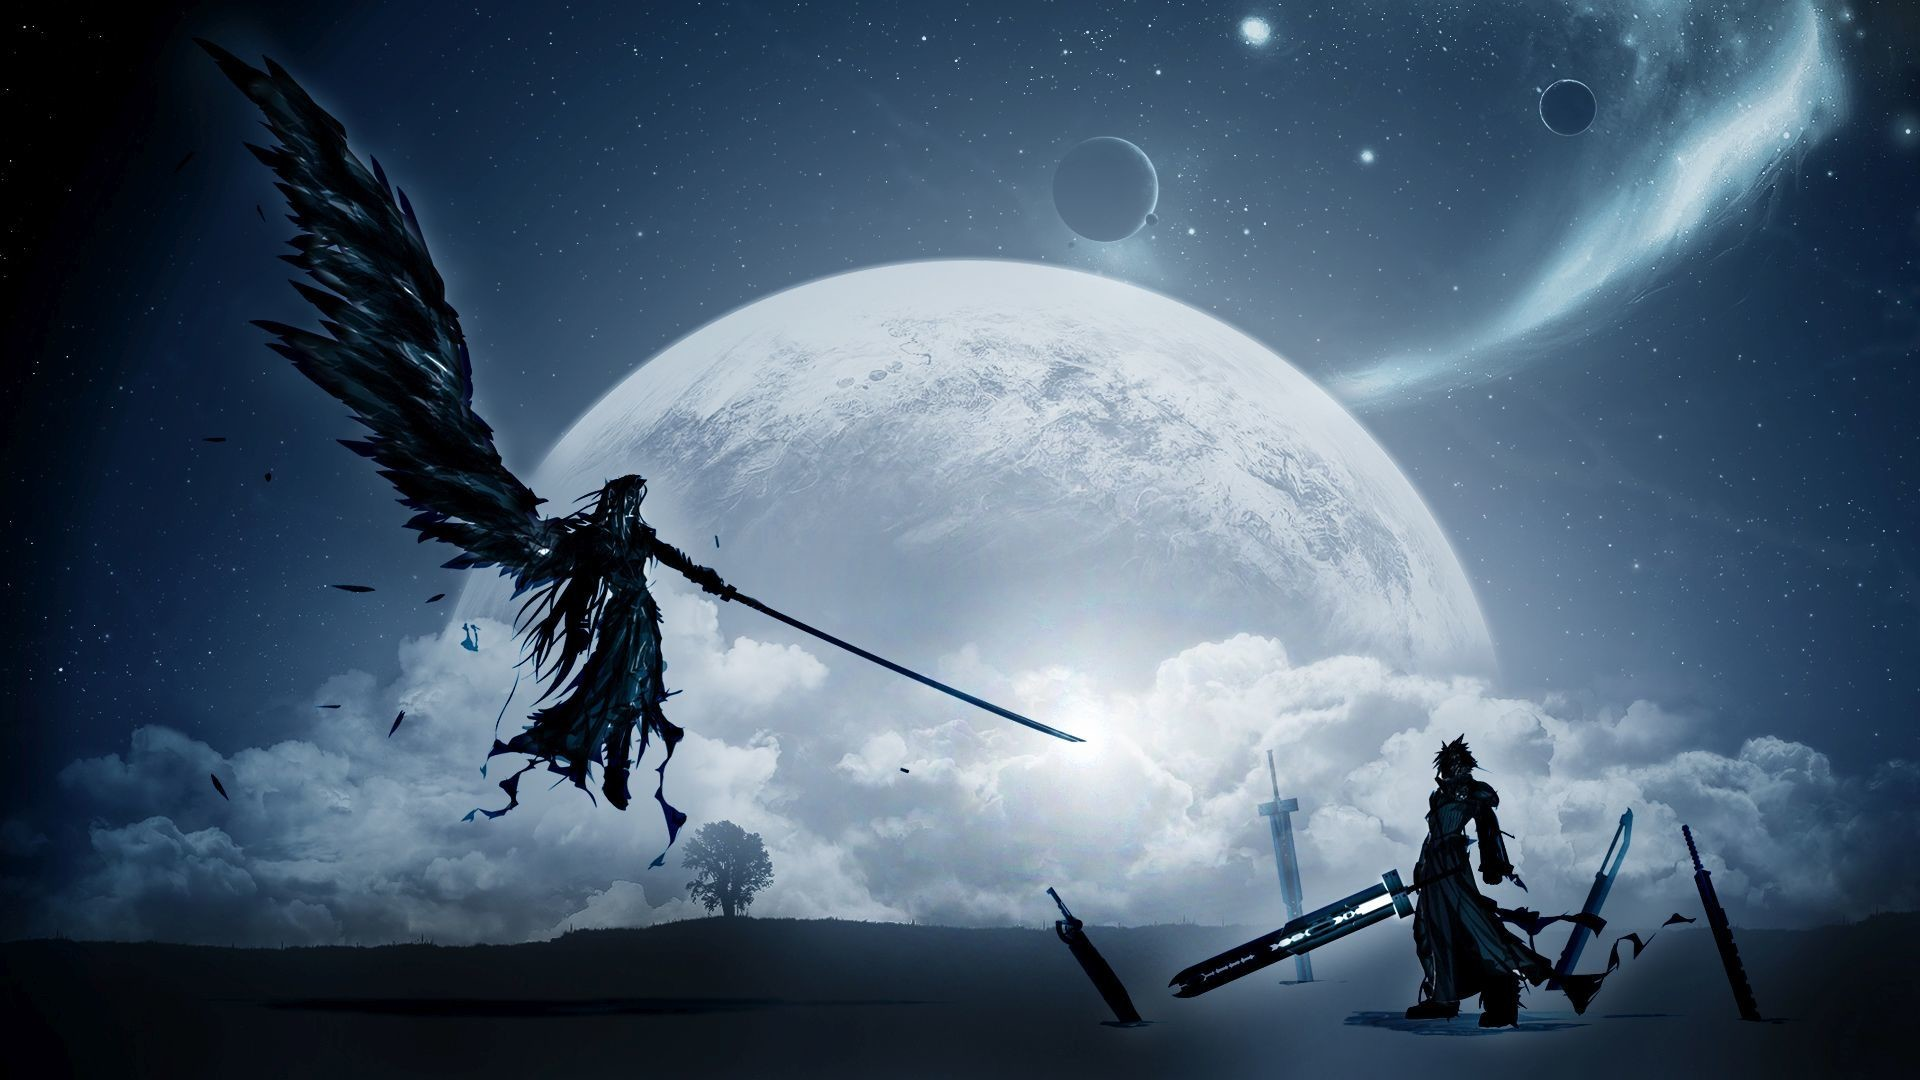 Anime Inspired Hd Fantasy Wallpapers For Your Collection: HD Final Fantasy Wallpapers (63+ Images